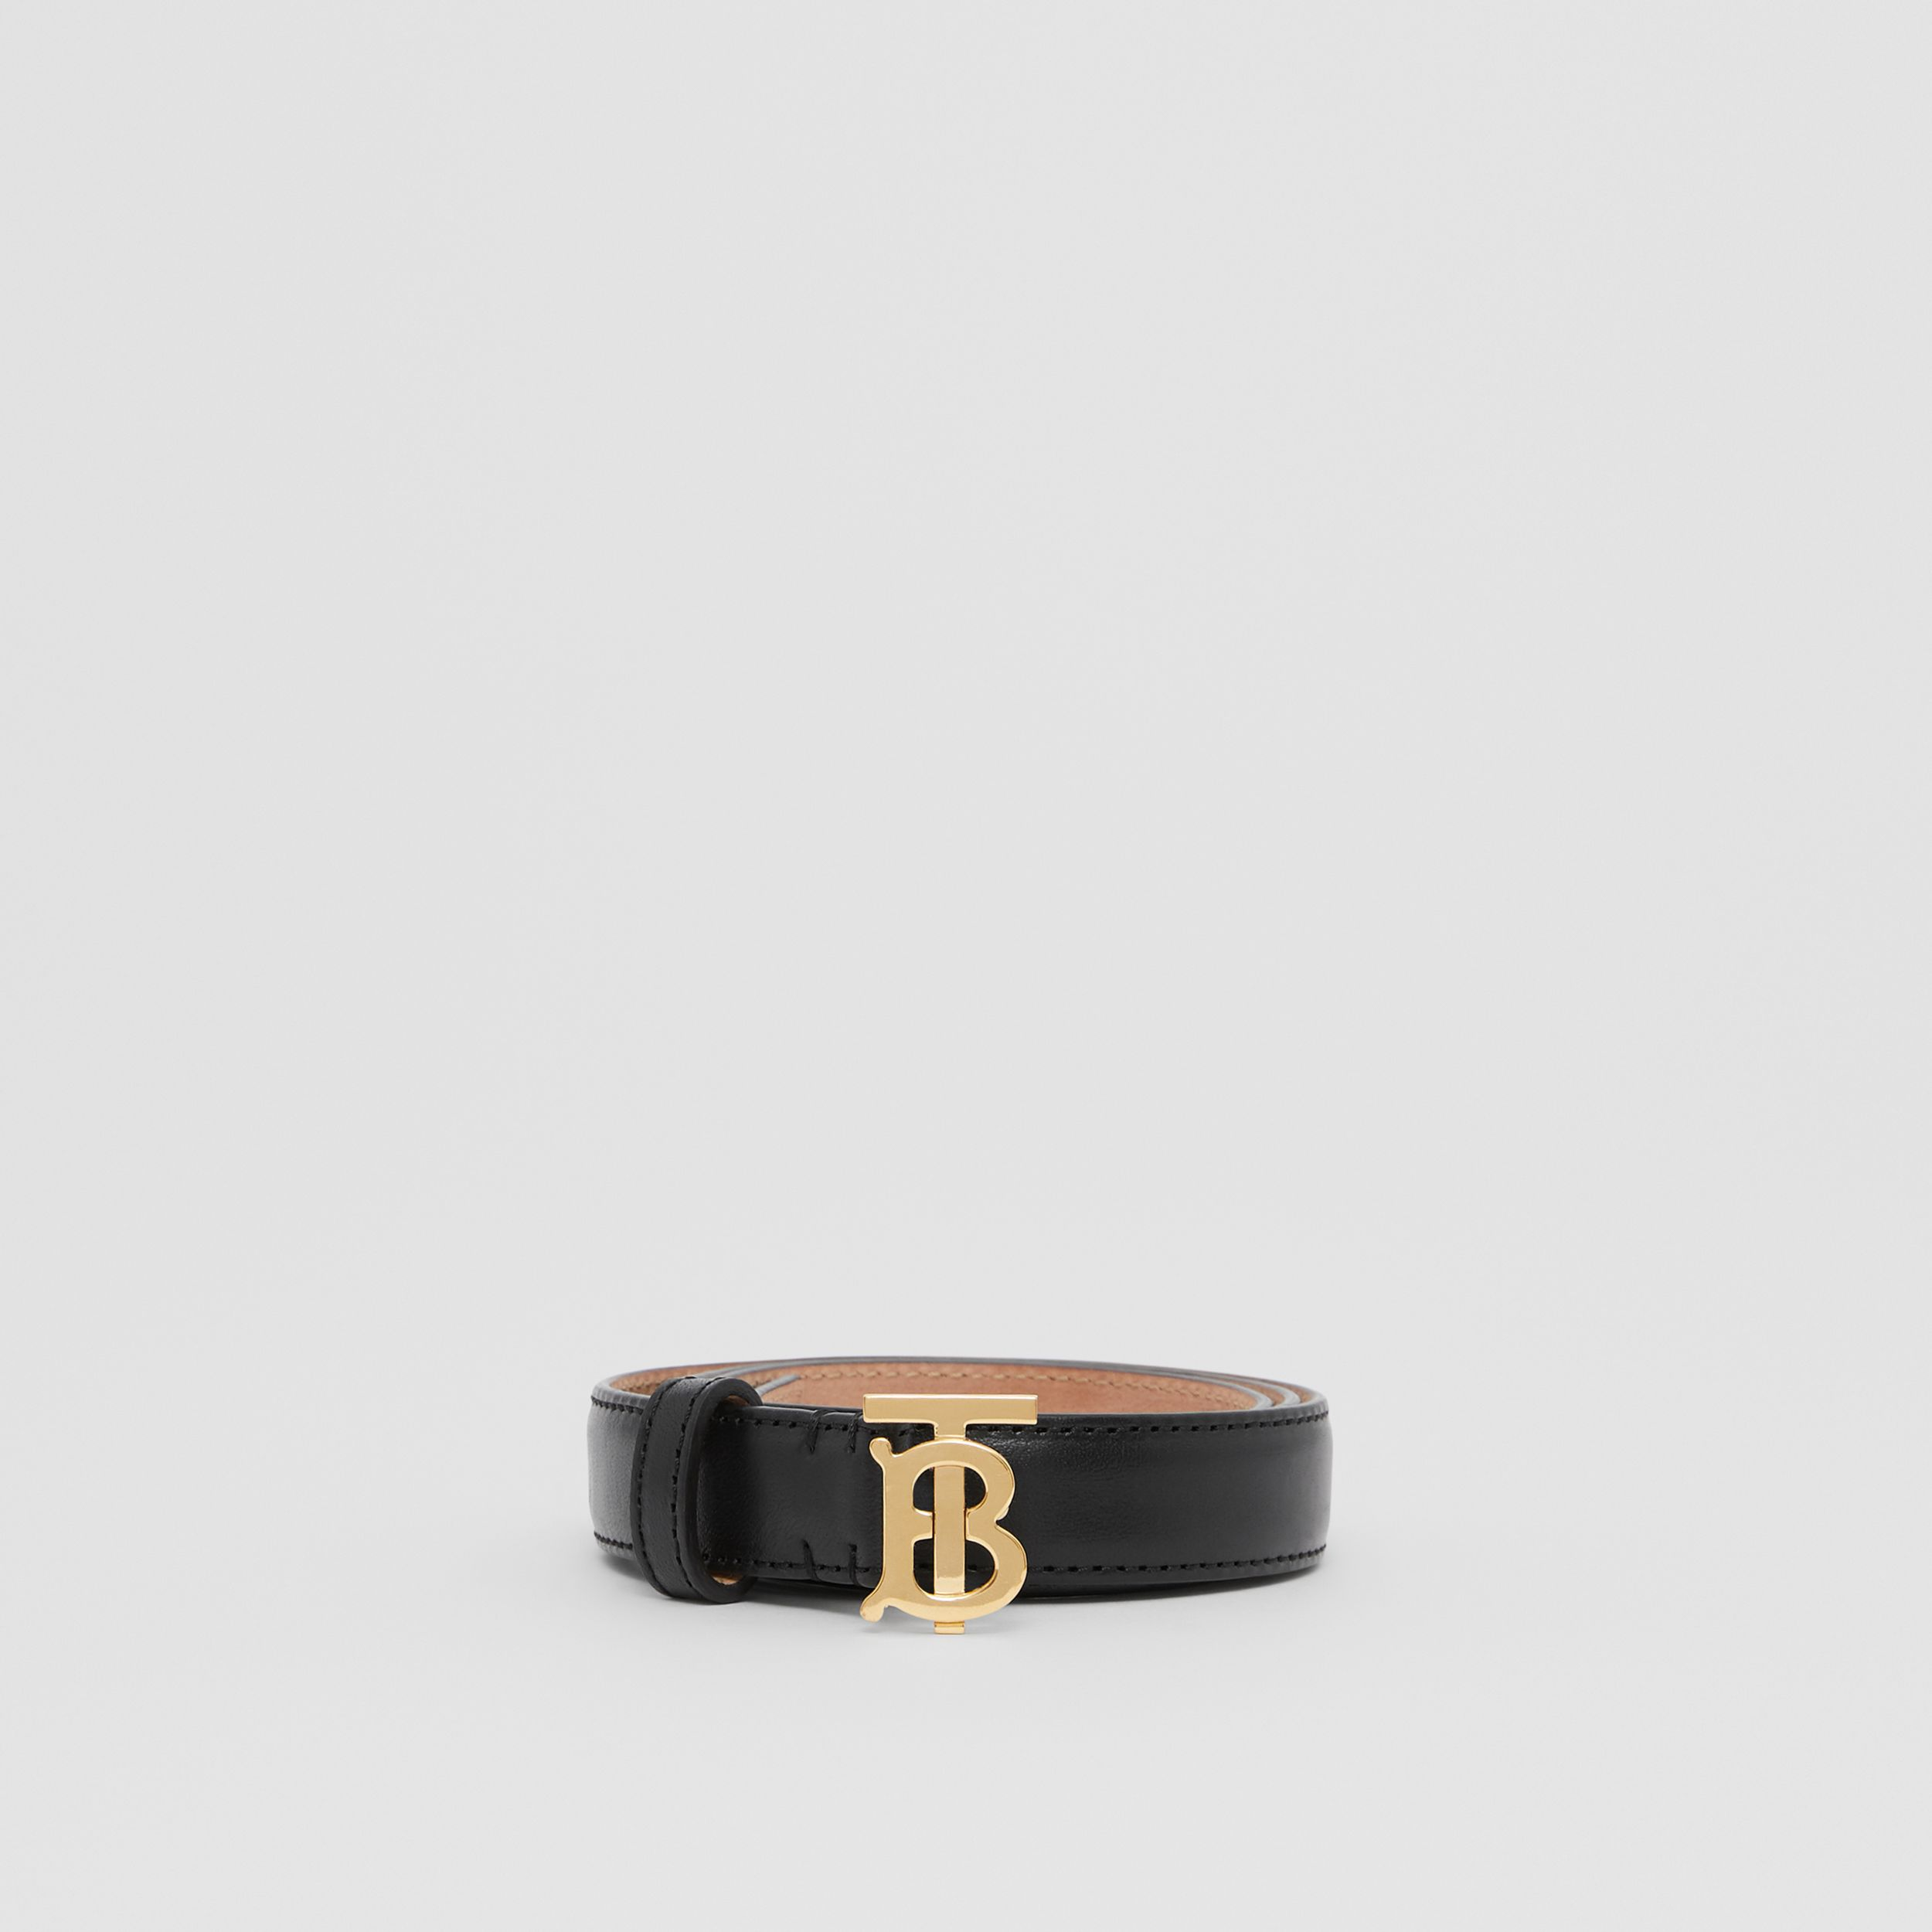 Monogram Motif Leather Belt in Black/light Gold - Women | Burberry - 3